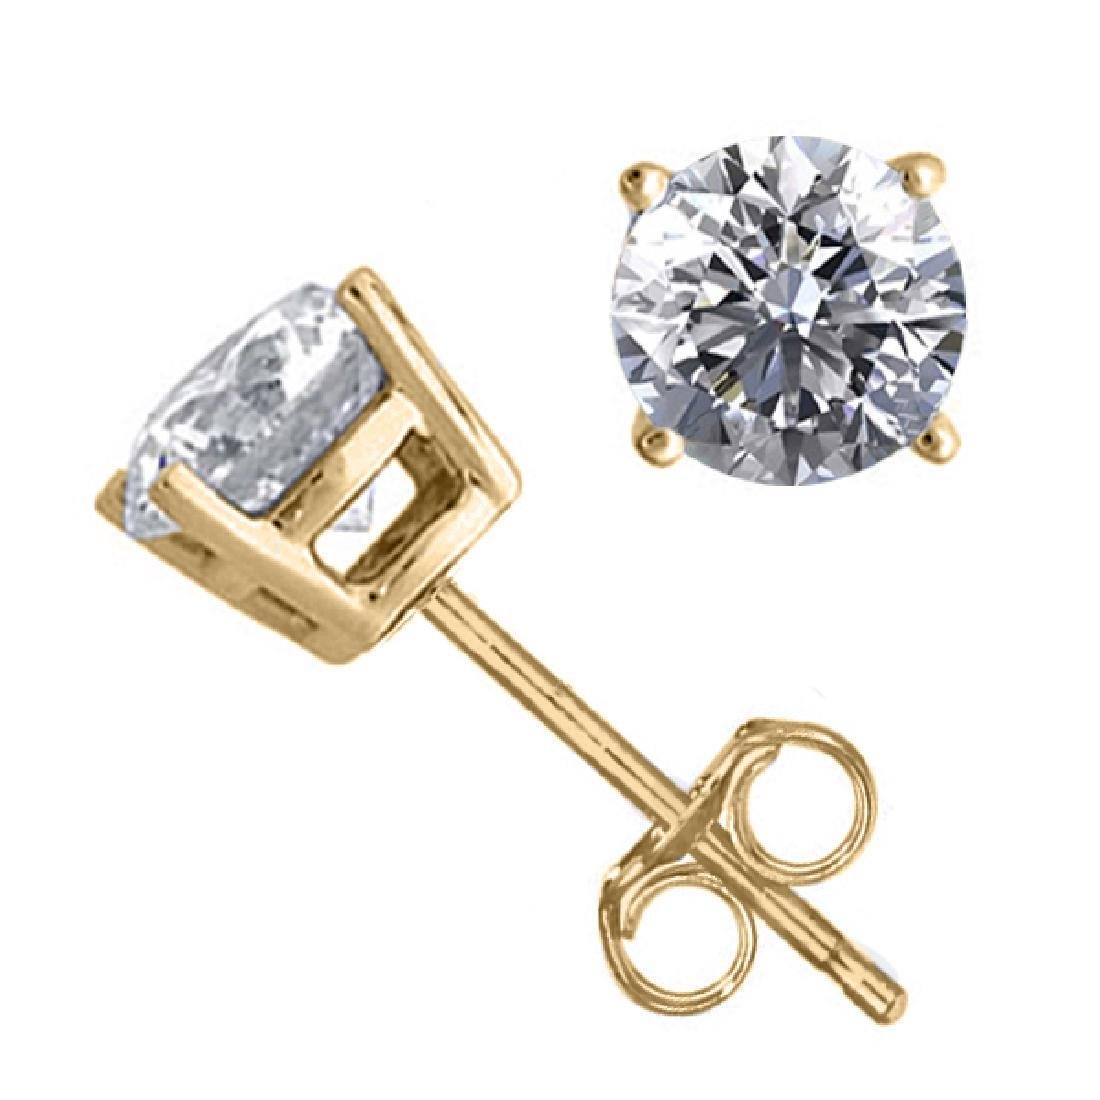 14K Yellow Gold 1.54 ctw Natural Diamond Stud Earrings